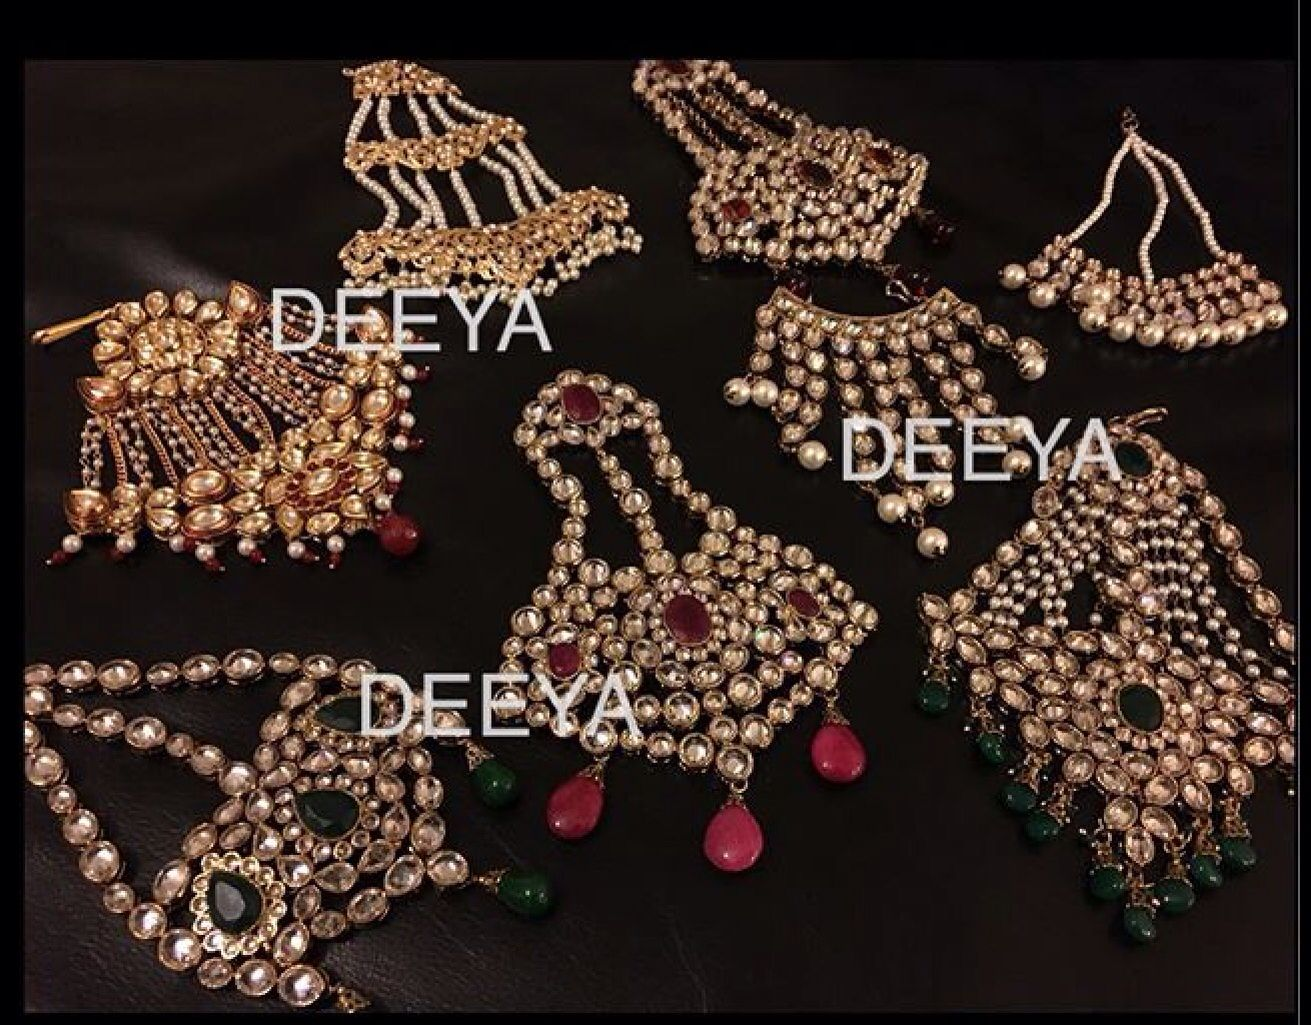 Deeya's uniquely designed high quality jhumar for all